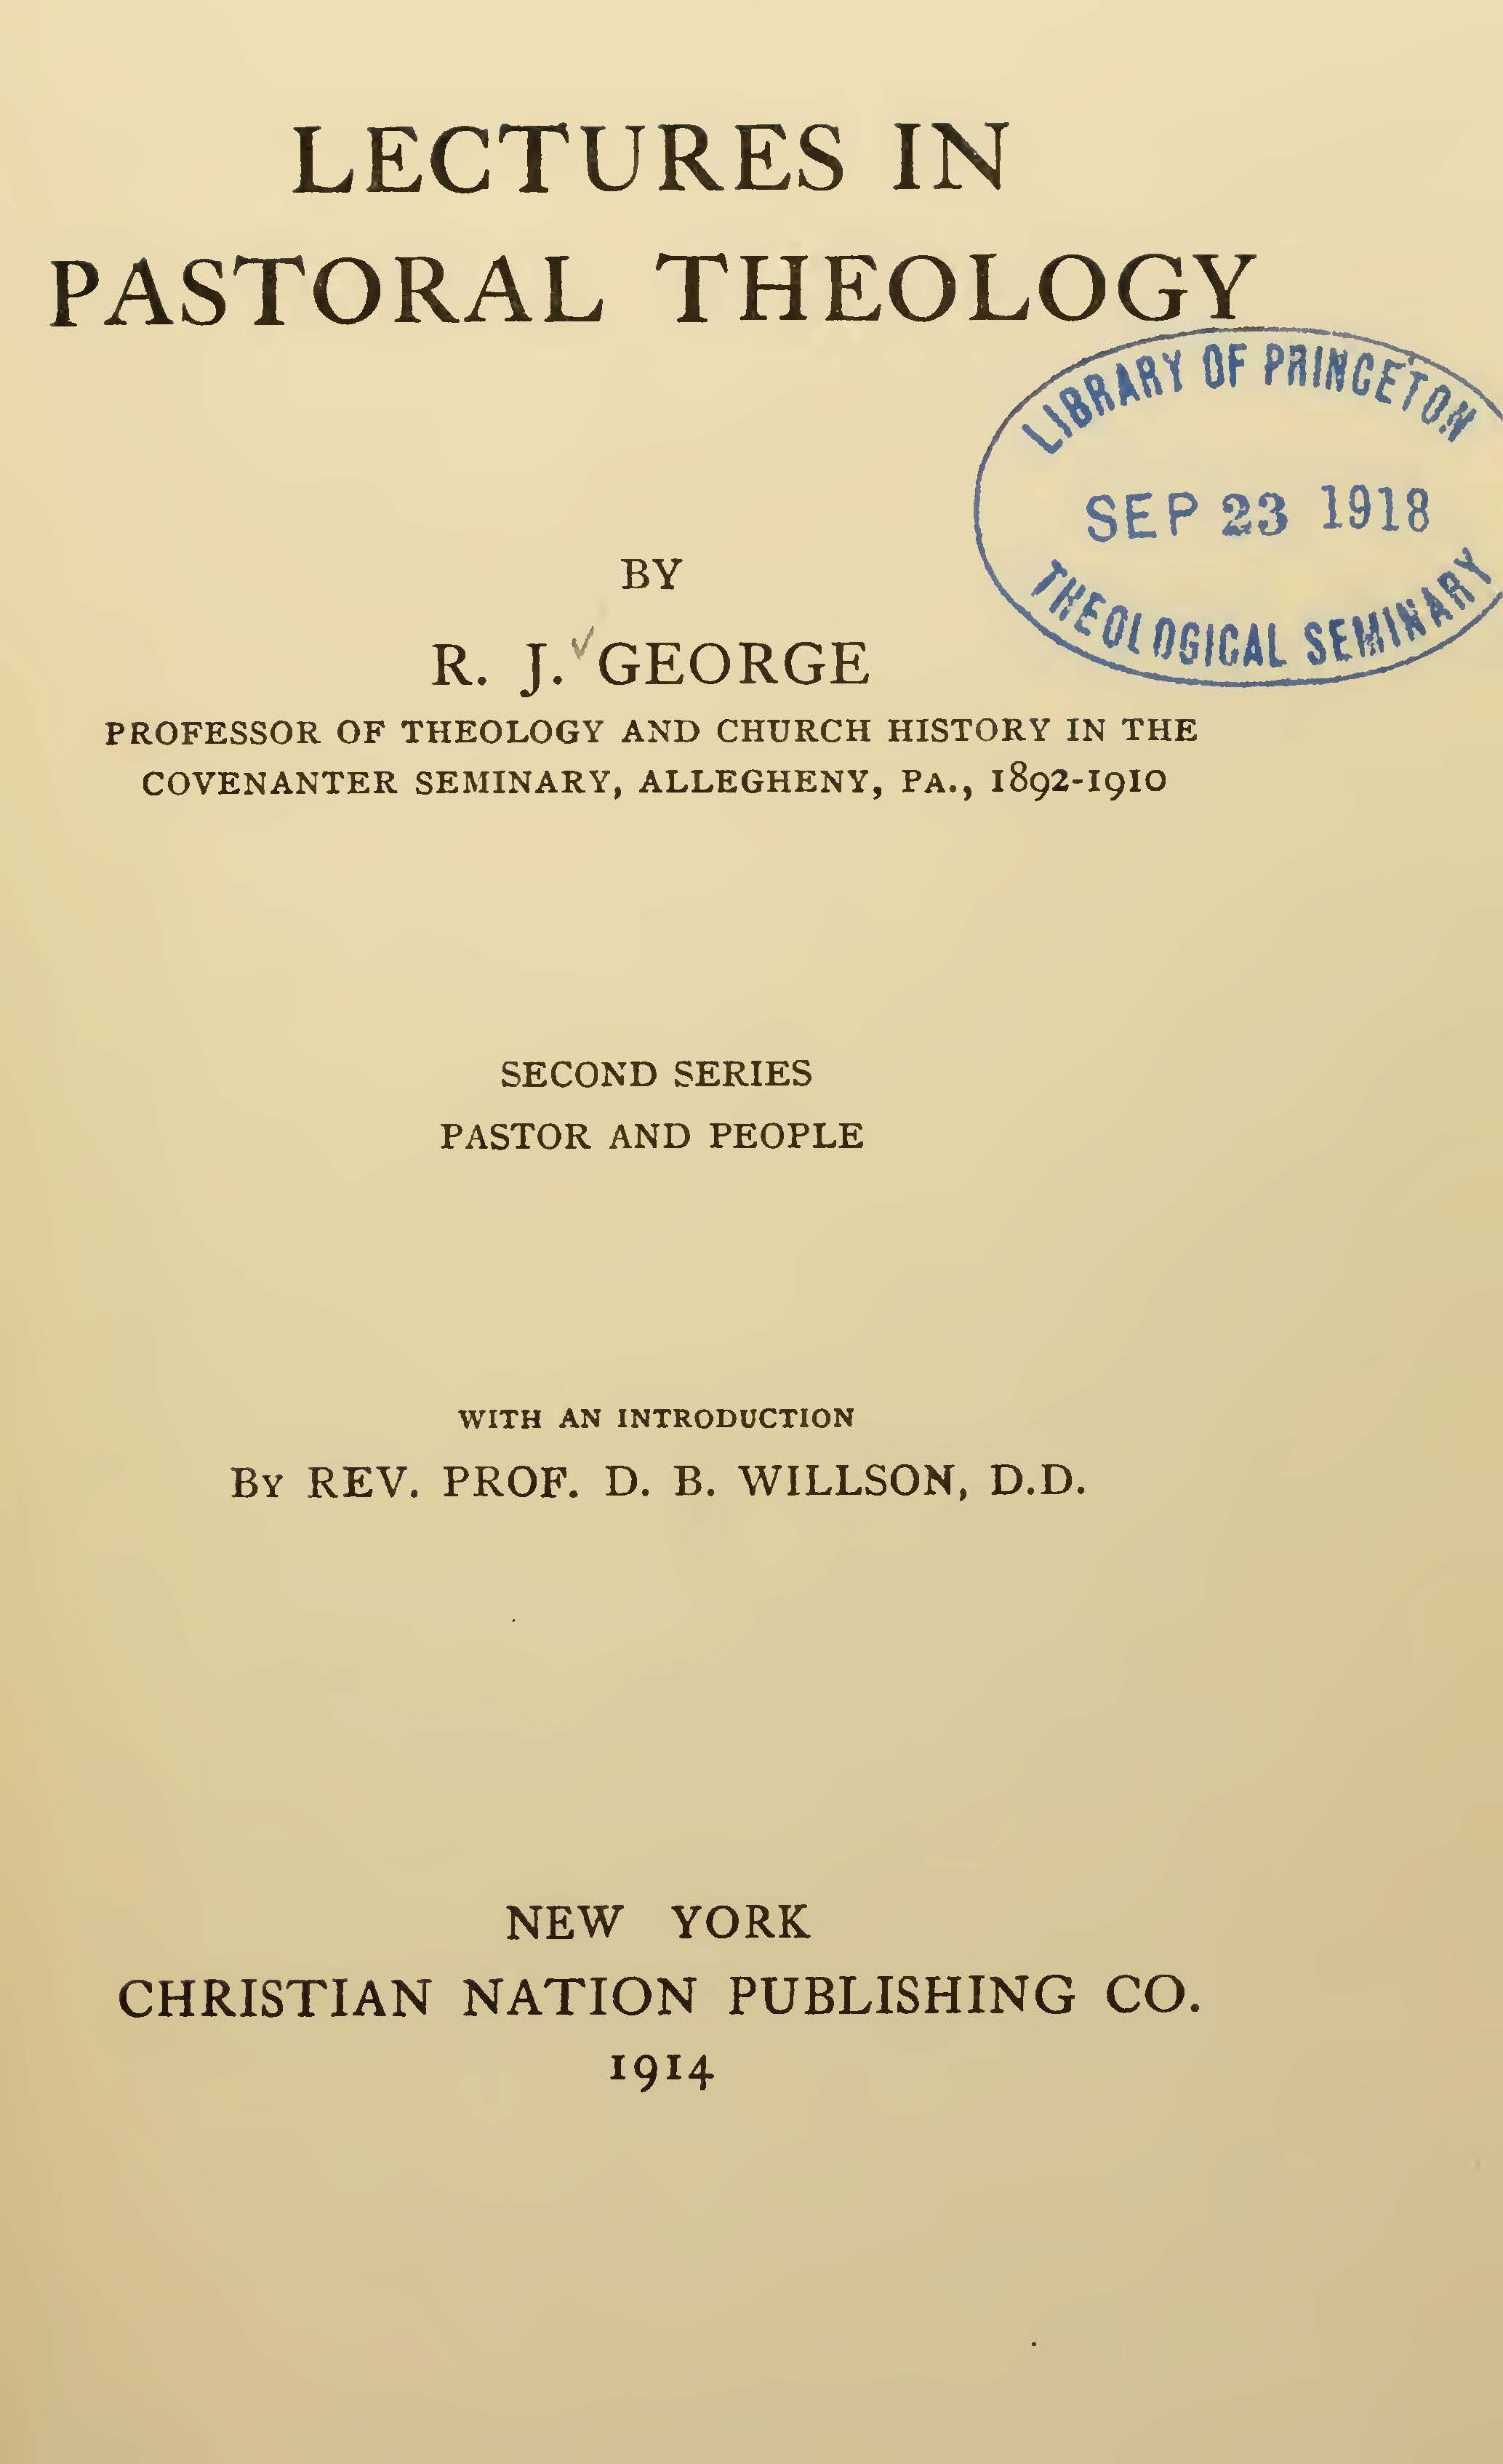 George, Robert James, Lectures in Pastoral Theology, Vol. 2 Title Page.jpg